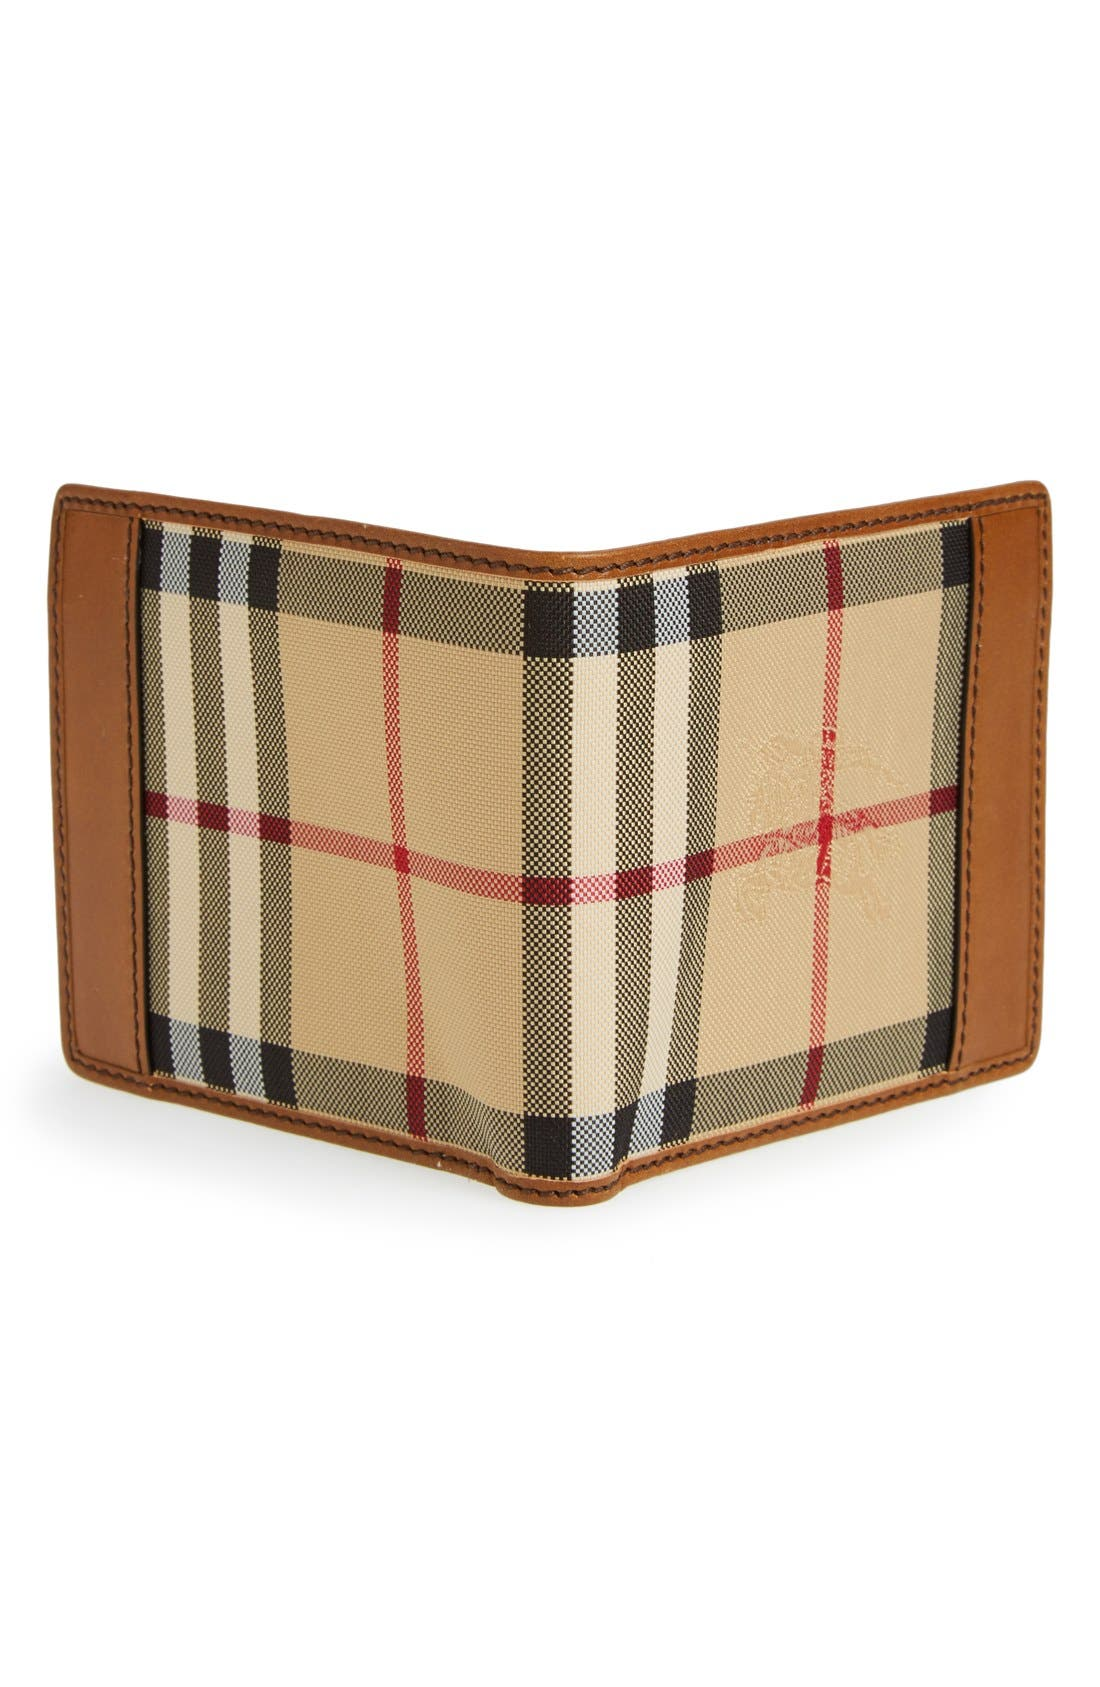 Horseferry Check Billfold Wallet,                             Alternate thumbnail 3, color,                             Tan